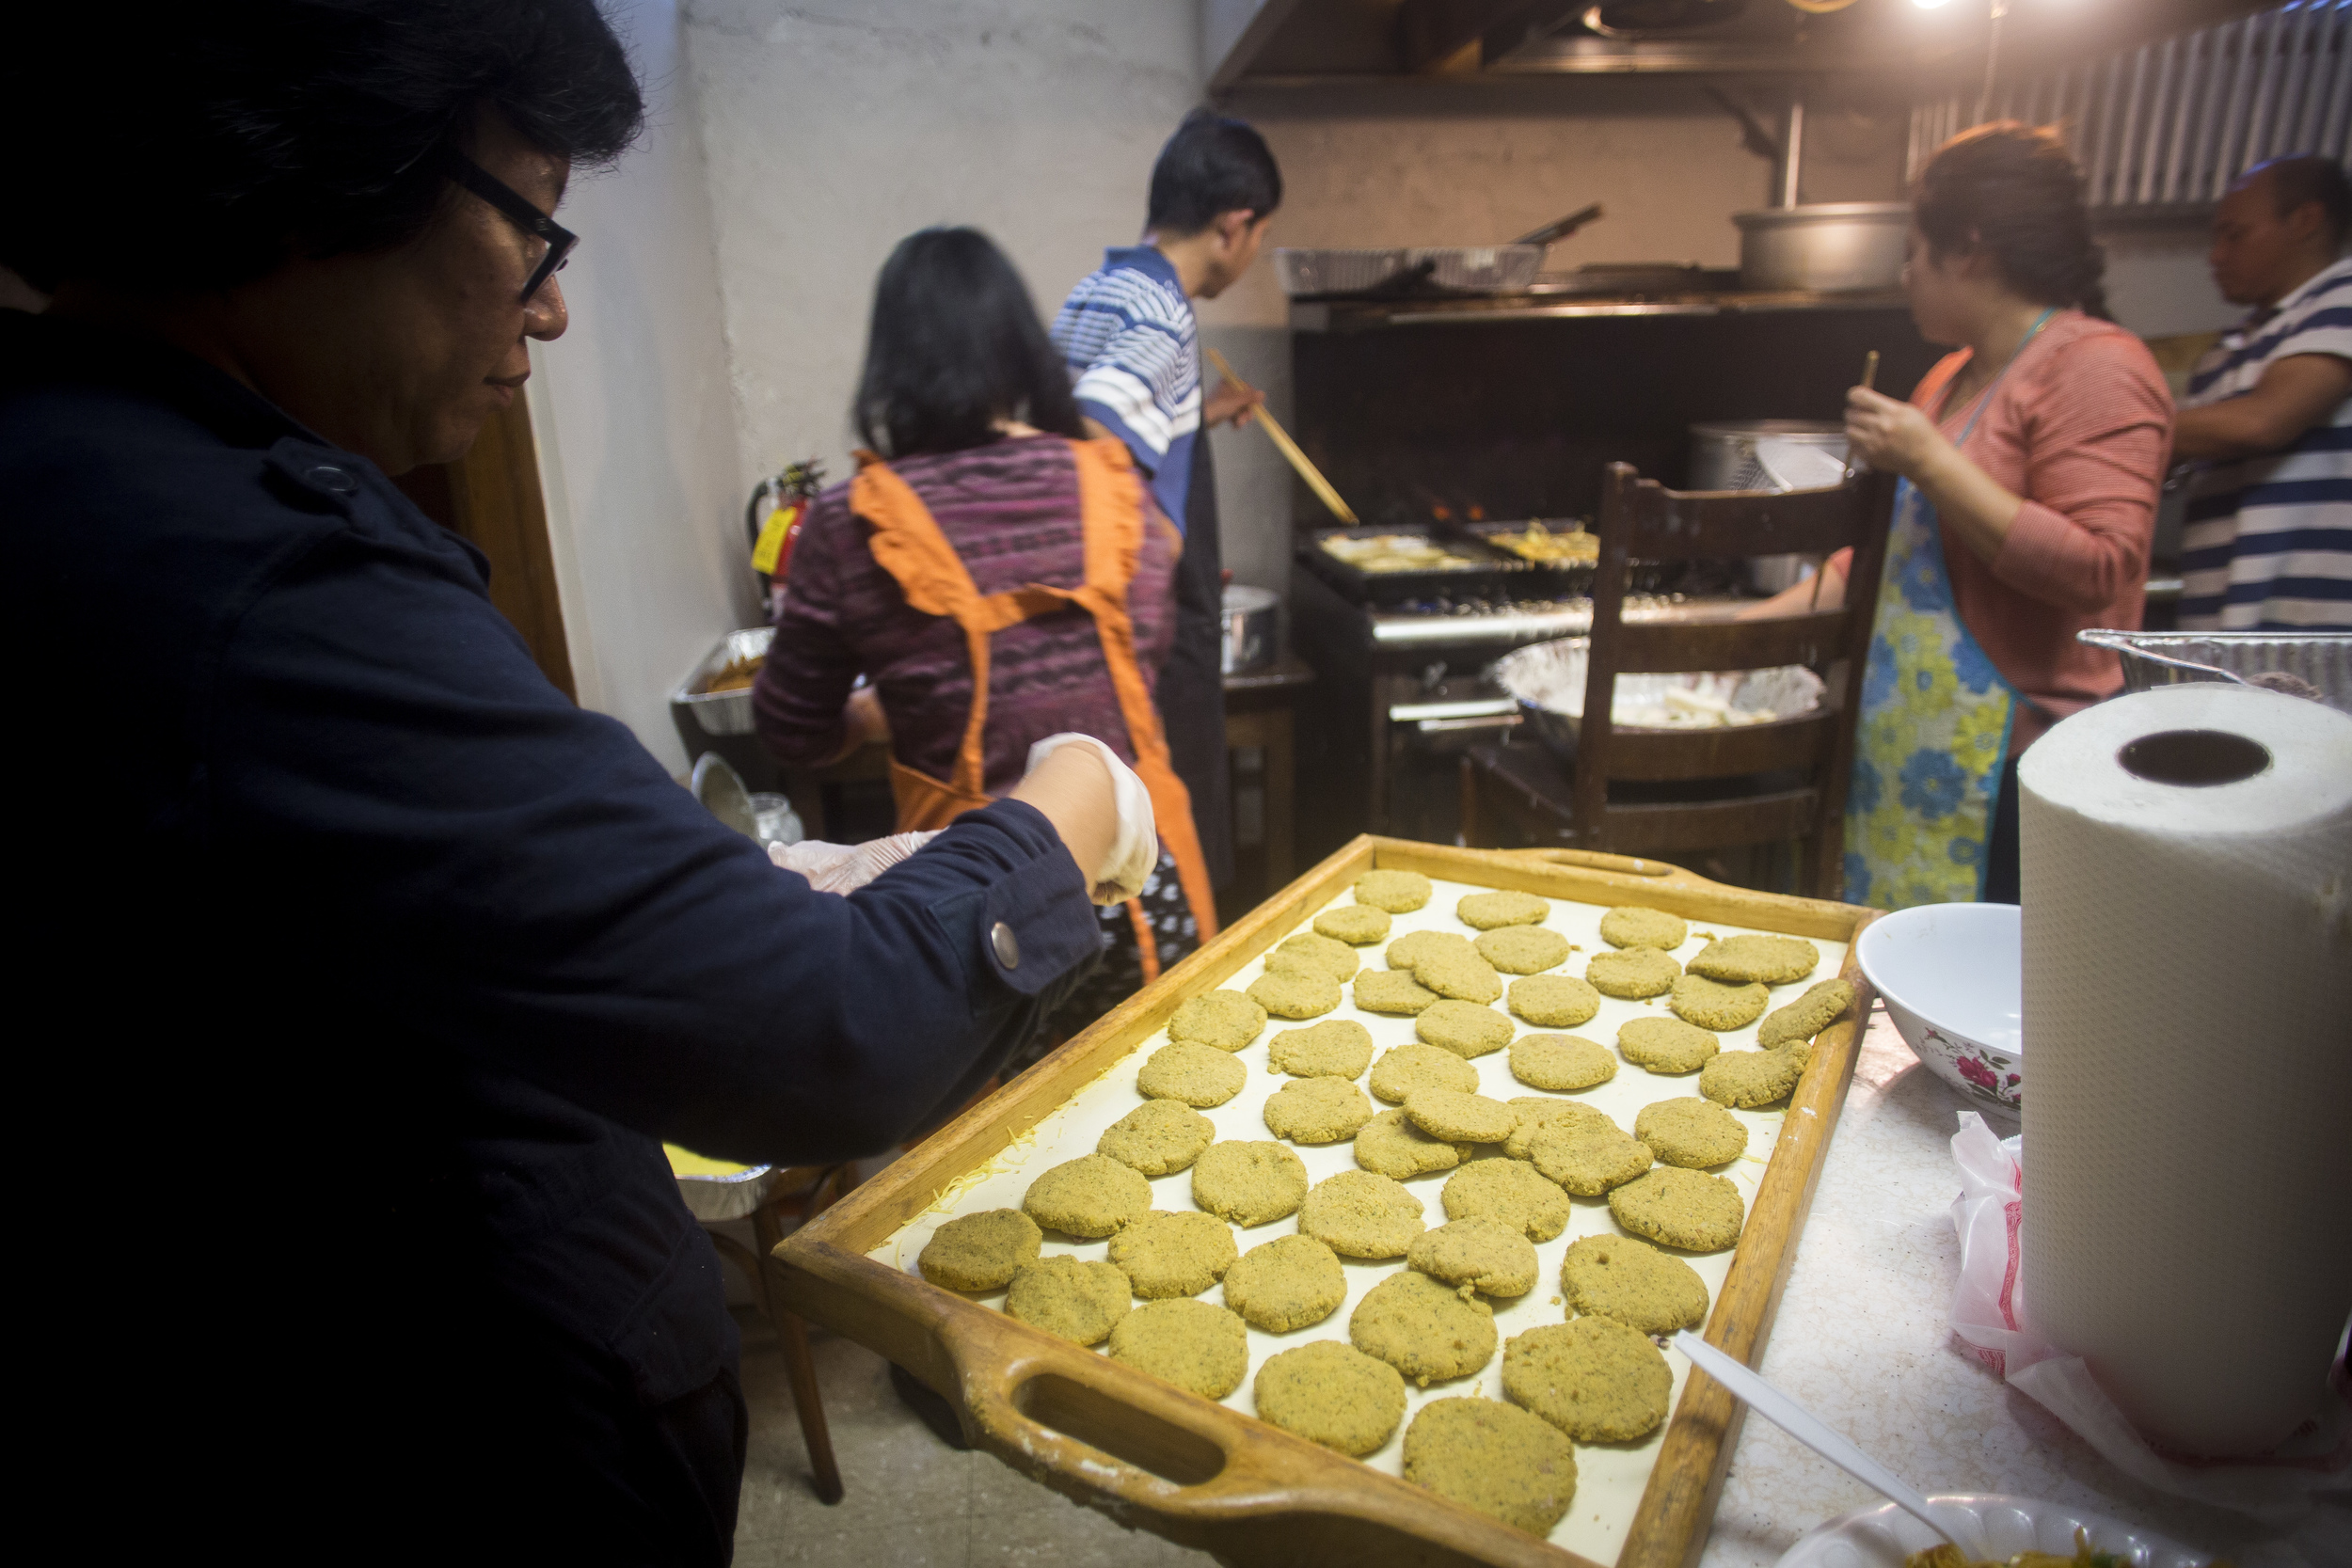 Preparing home-made authentic Burmese food at the kitchen in the basement of the International Community Church. By Ann Wang